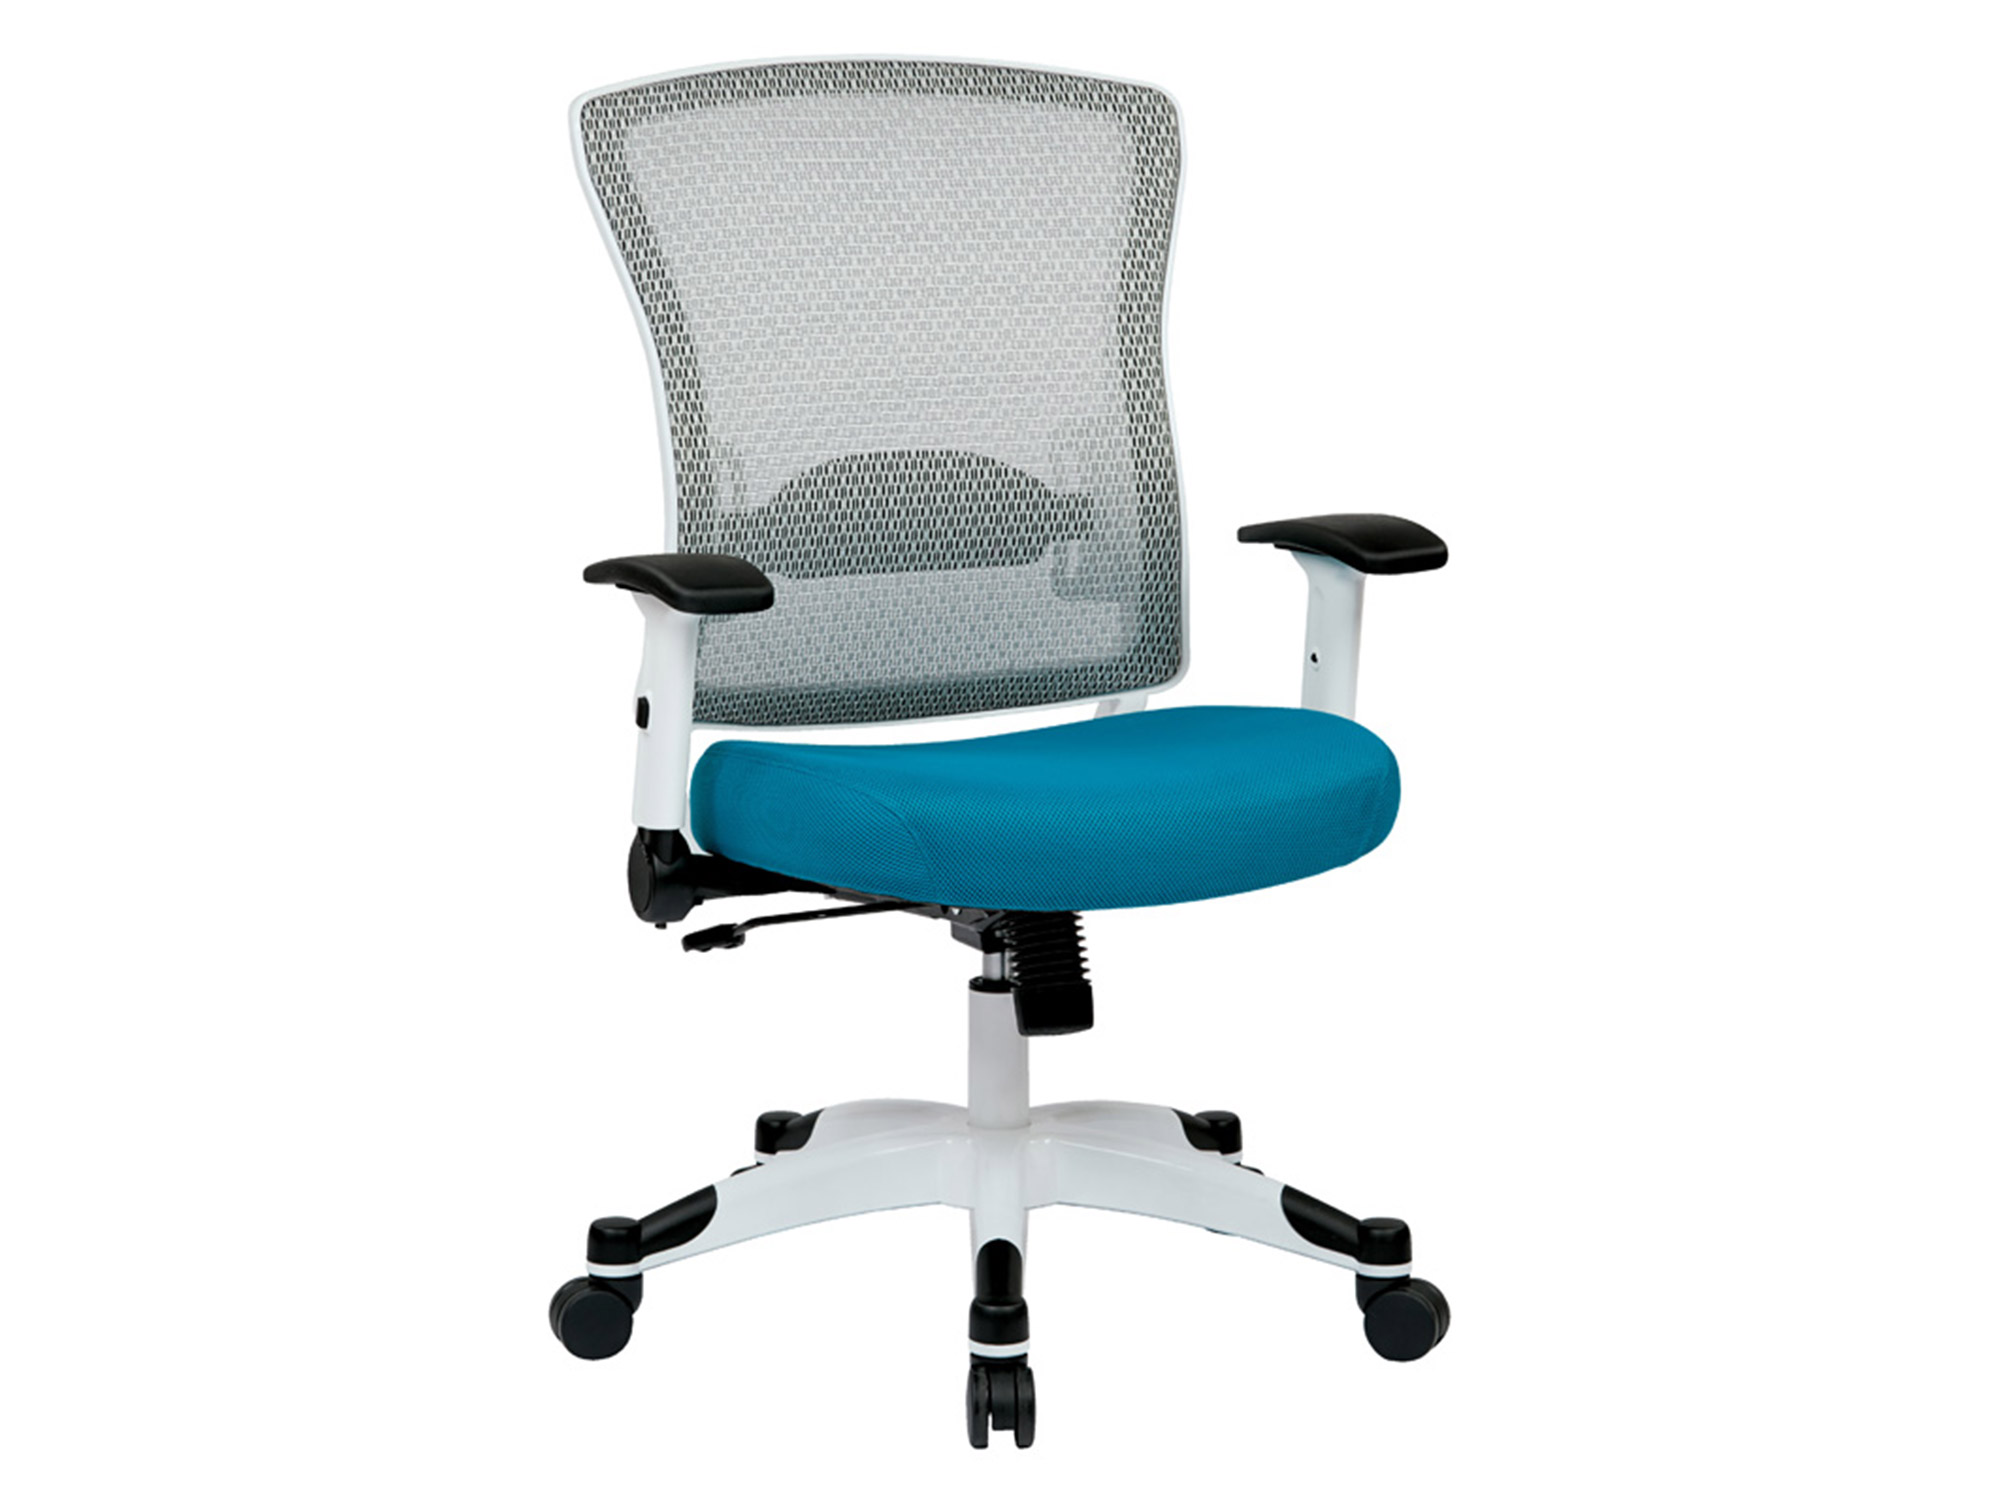 green office chair - office task chairs - chairs for office